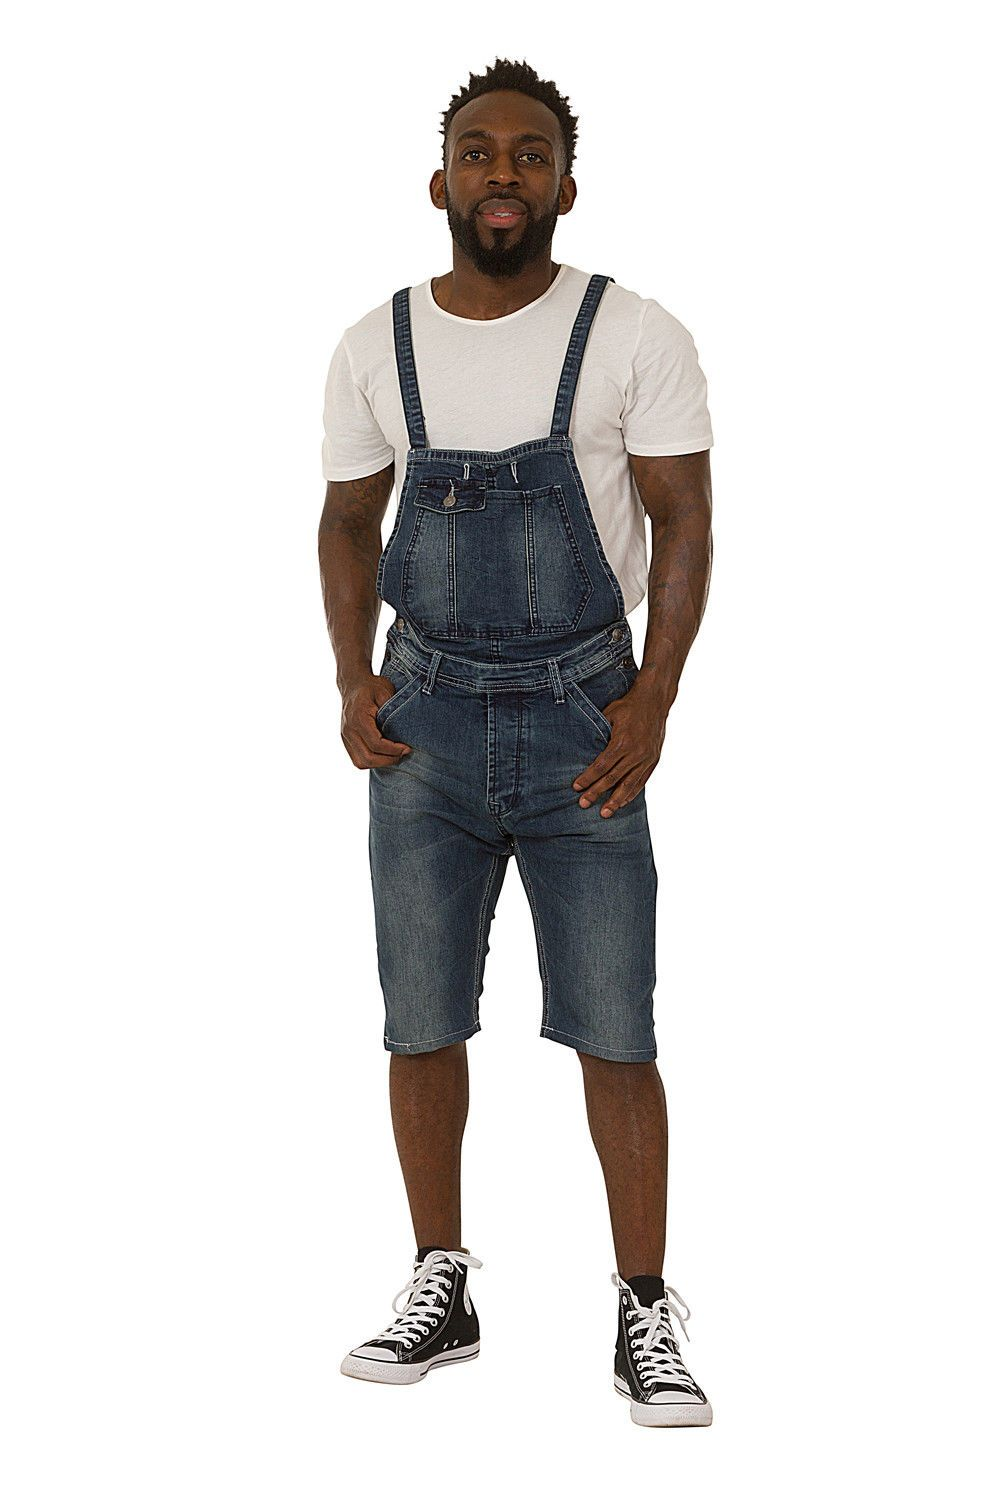 Full frontal pose wearing blue coloured dungaree shorts from Dungarees Online.